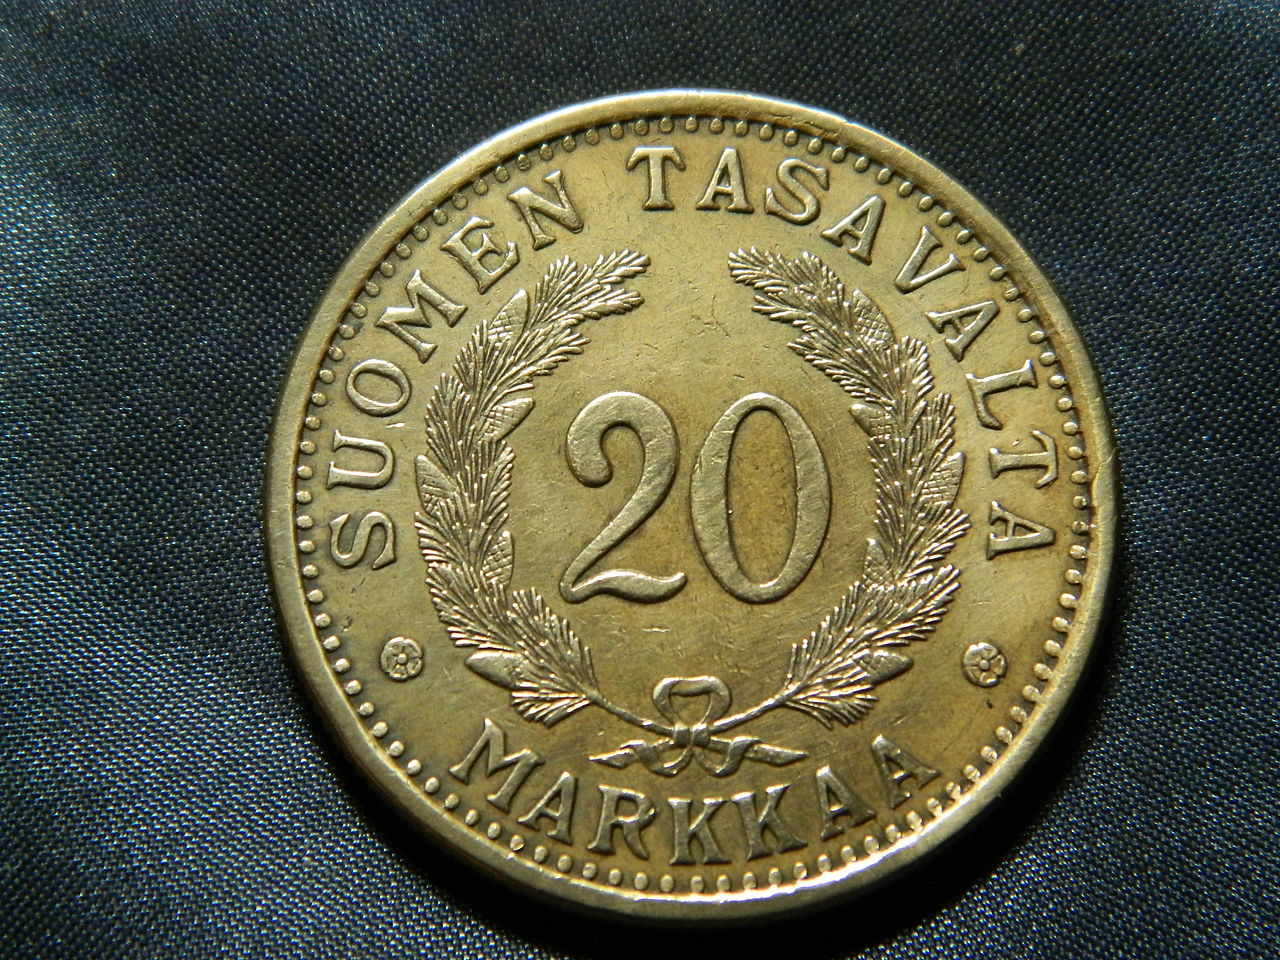 Finland gold coins